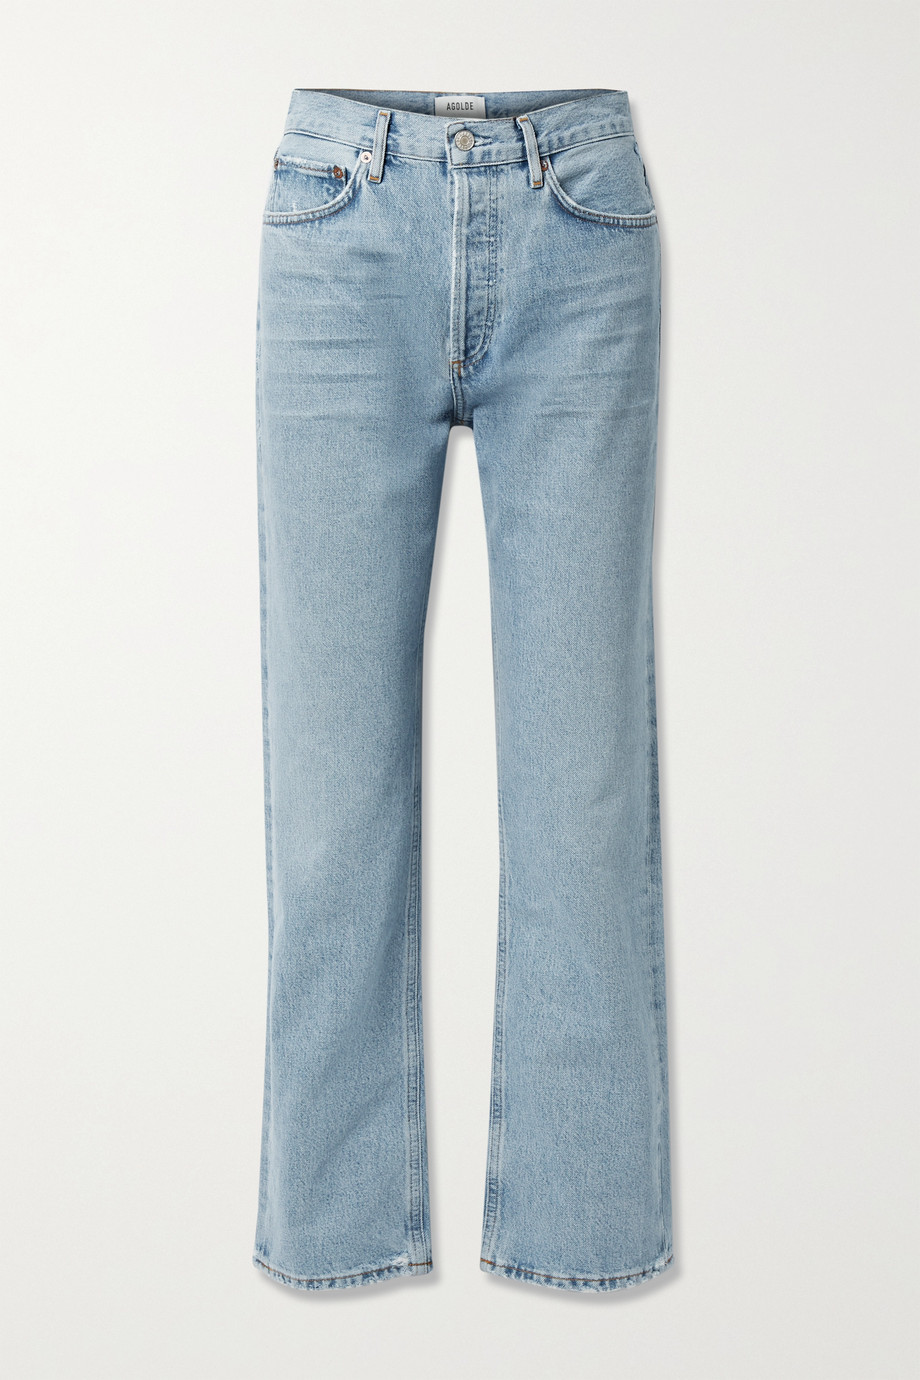 AGOLDE + NET SUSTAIN Lana distressed organic mid-rise straight-leg jeans